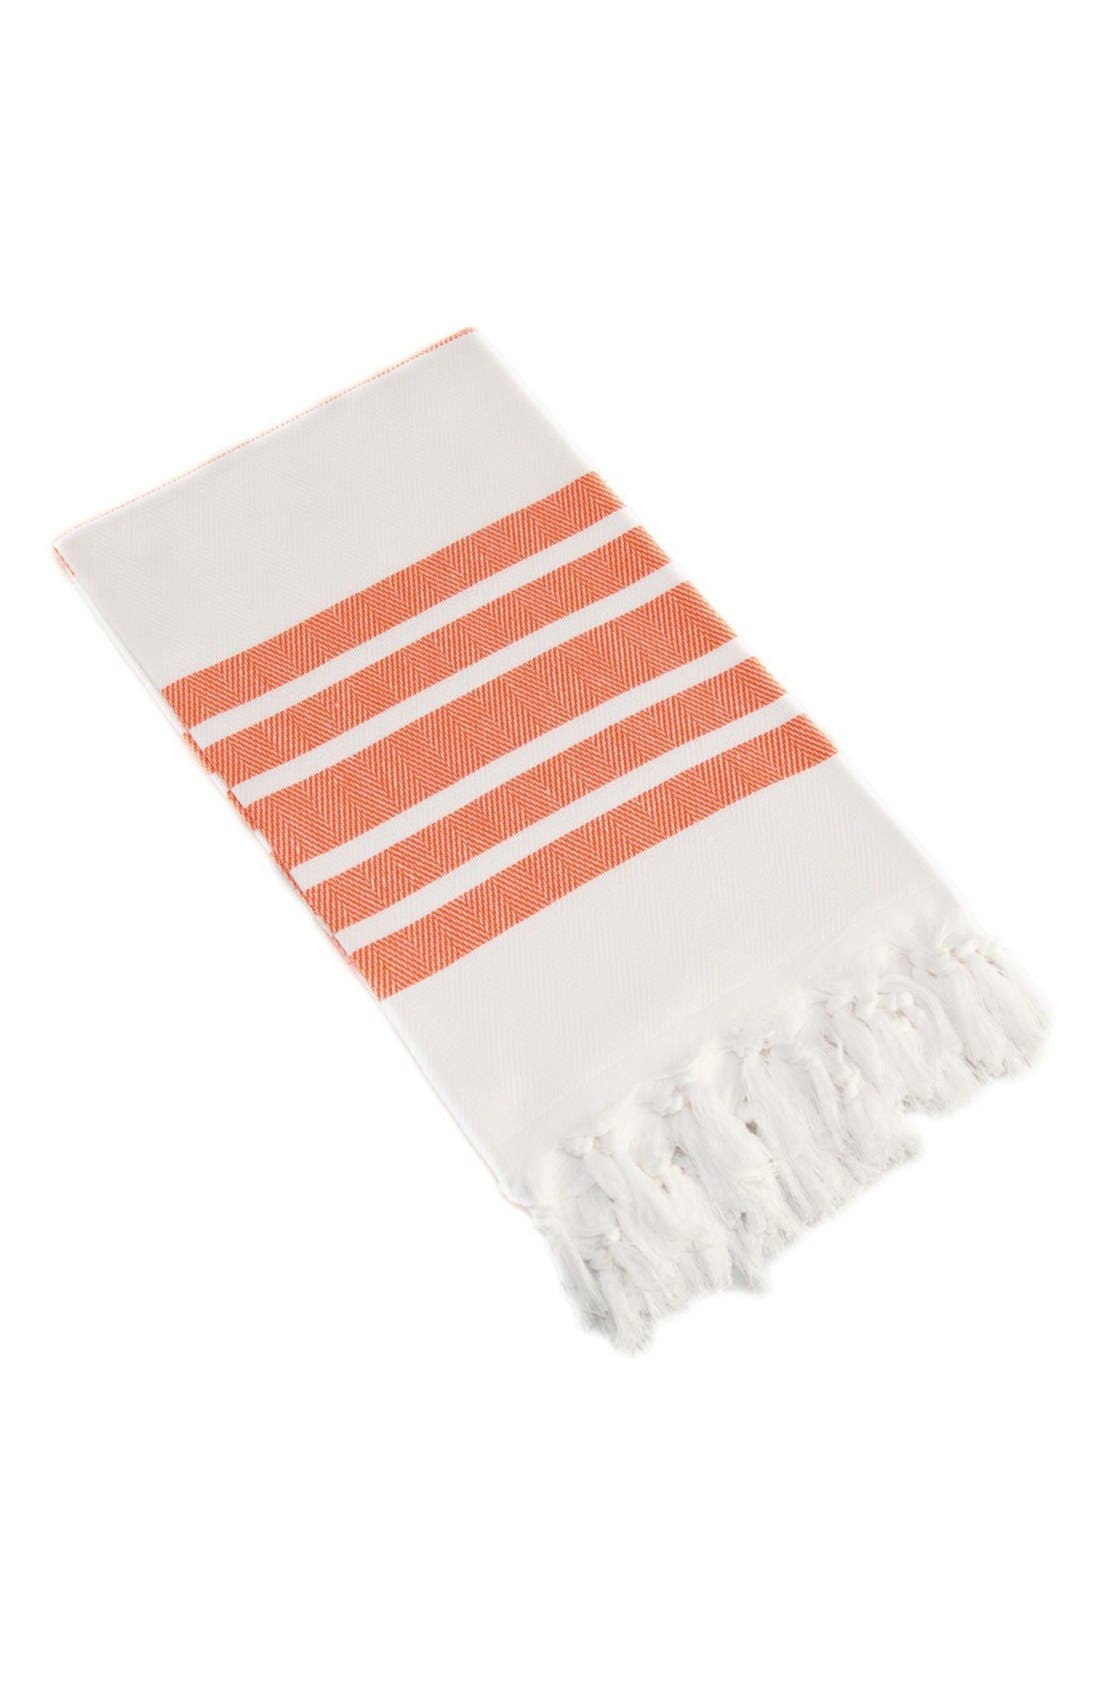 Herringbone Striped Turkish Pestemal Towel,                             Main thumbnail 1, color,                             800